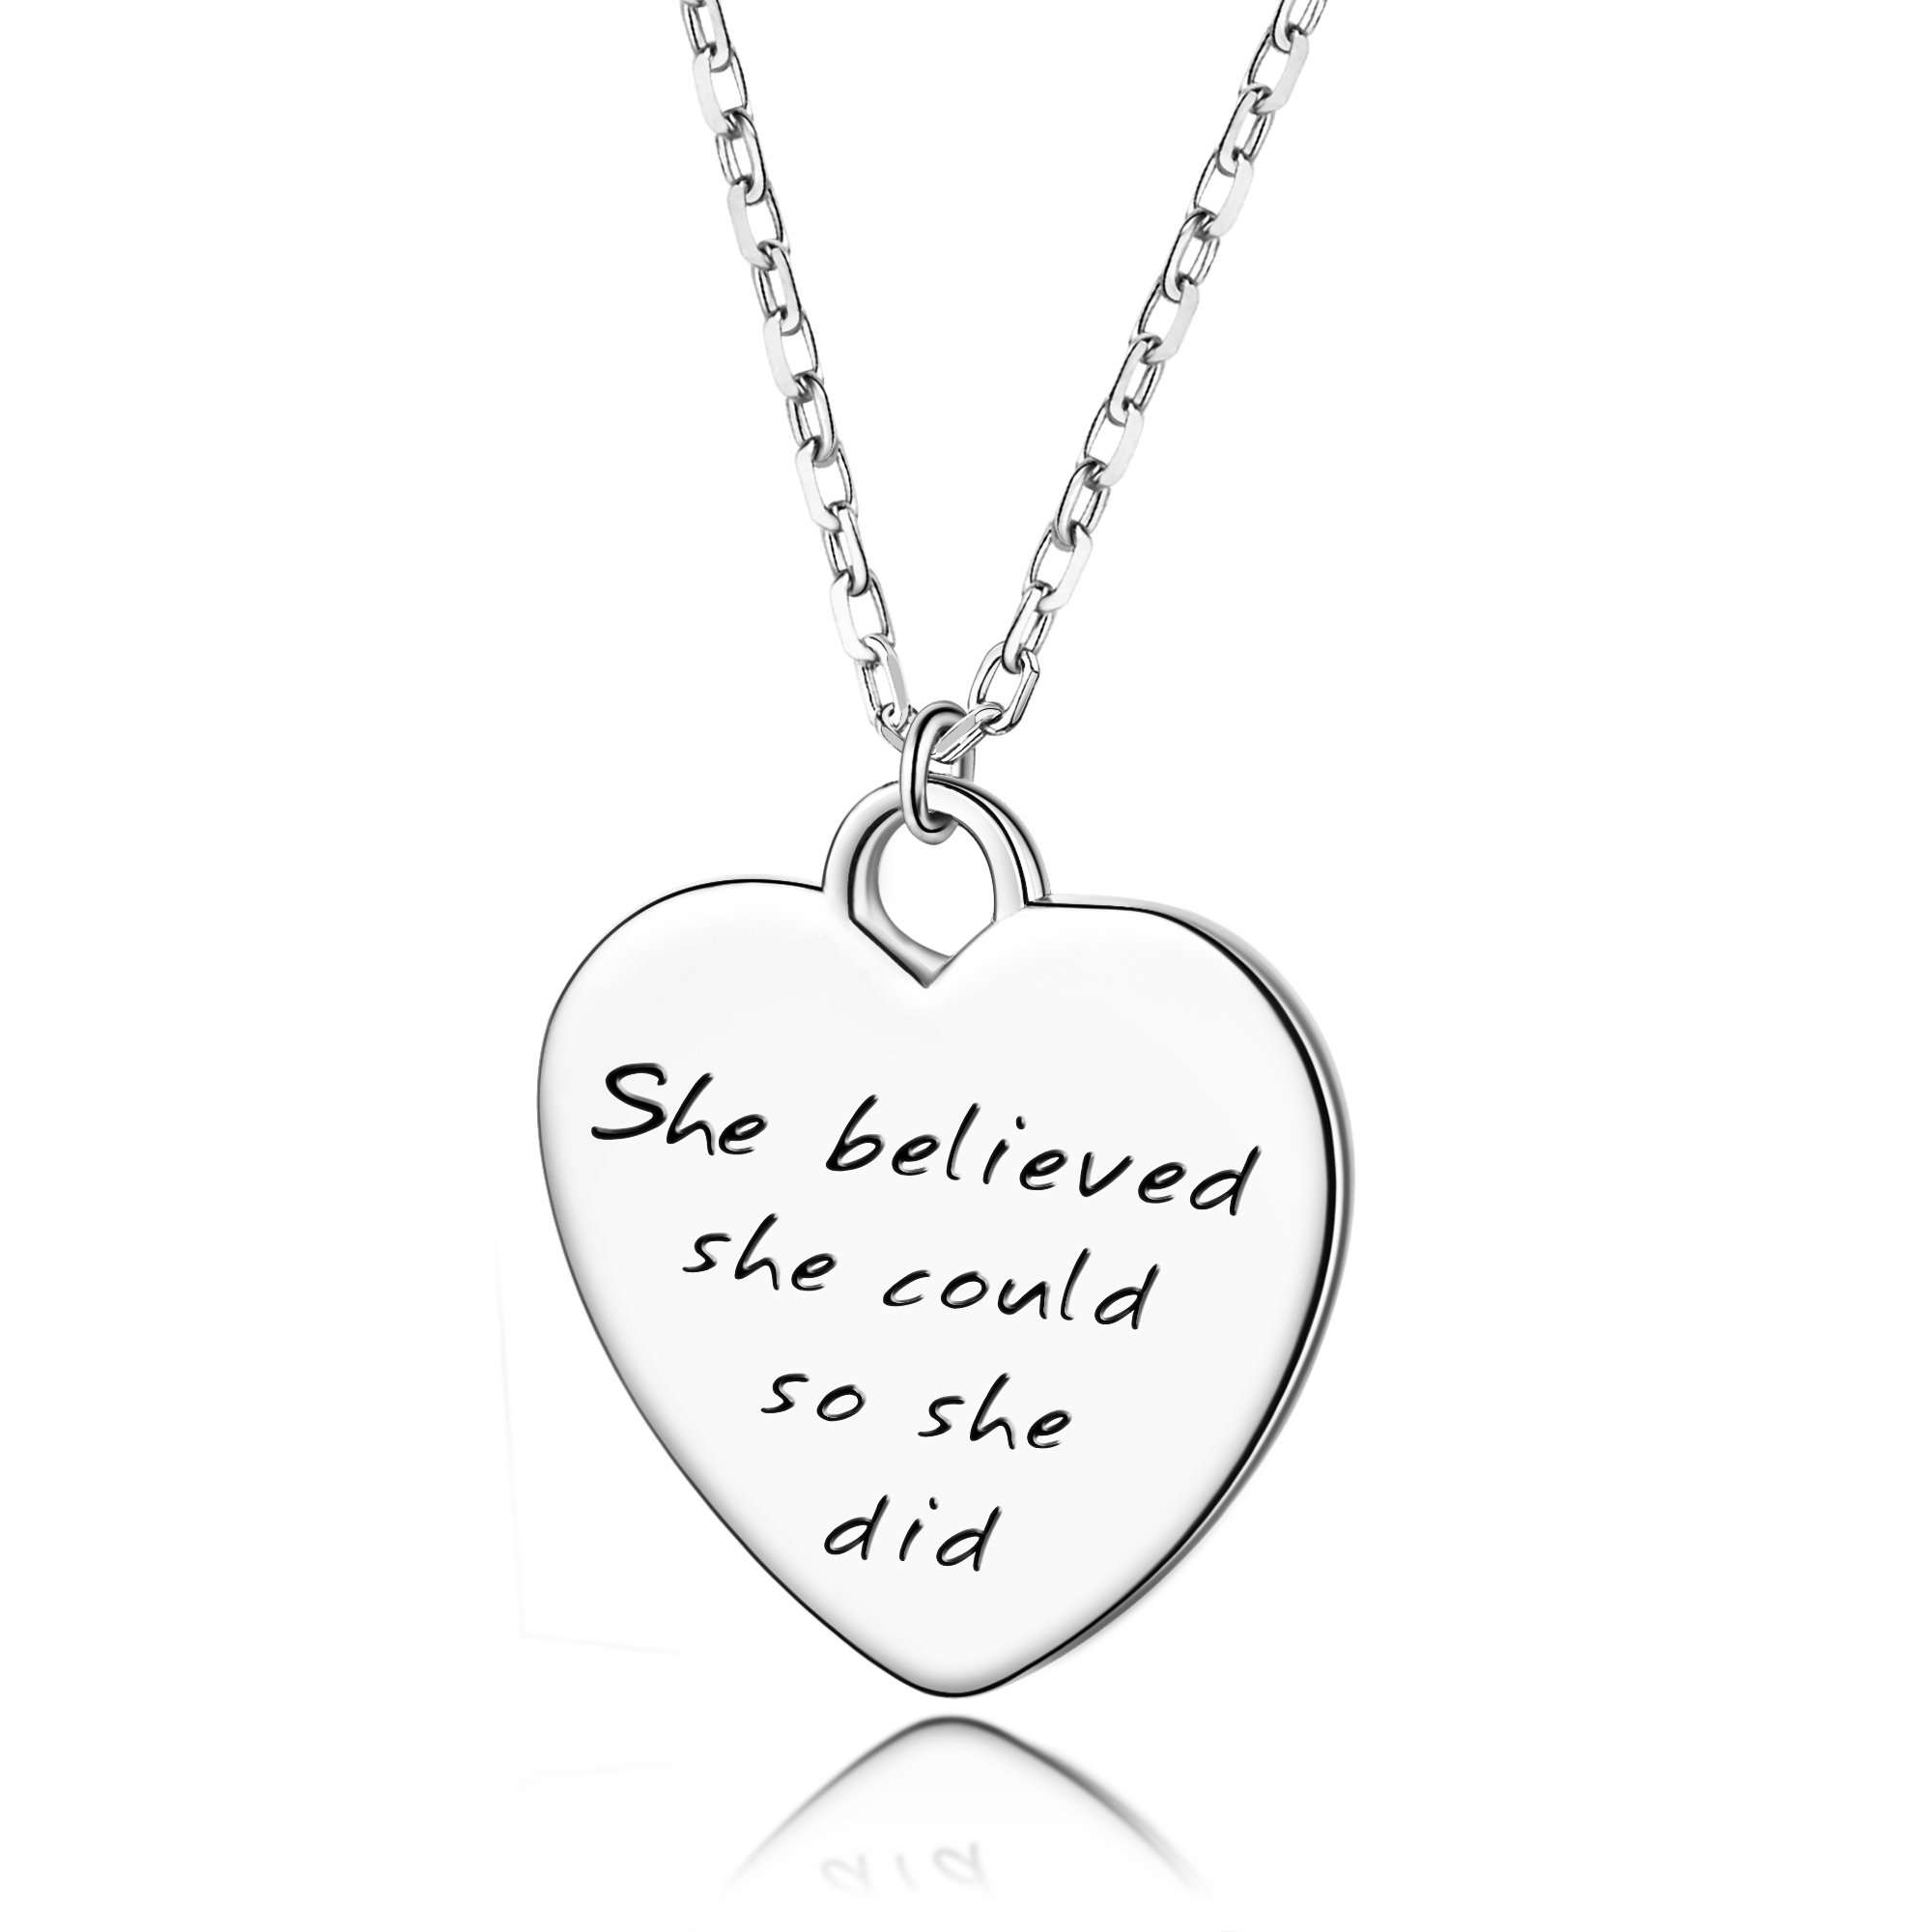 AmorAime Womens 925 Sterling Silver Engraved Heart Necklace She Believed She Could So She Did Inspirationl Believe Pendant Graduation Gift